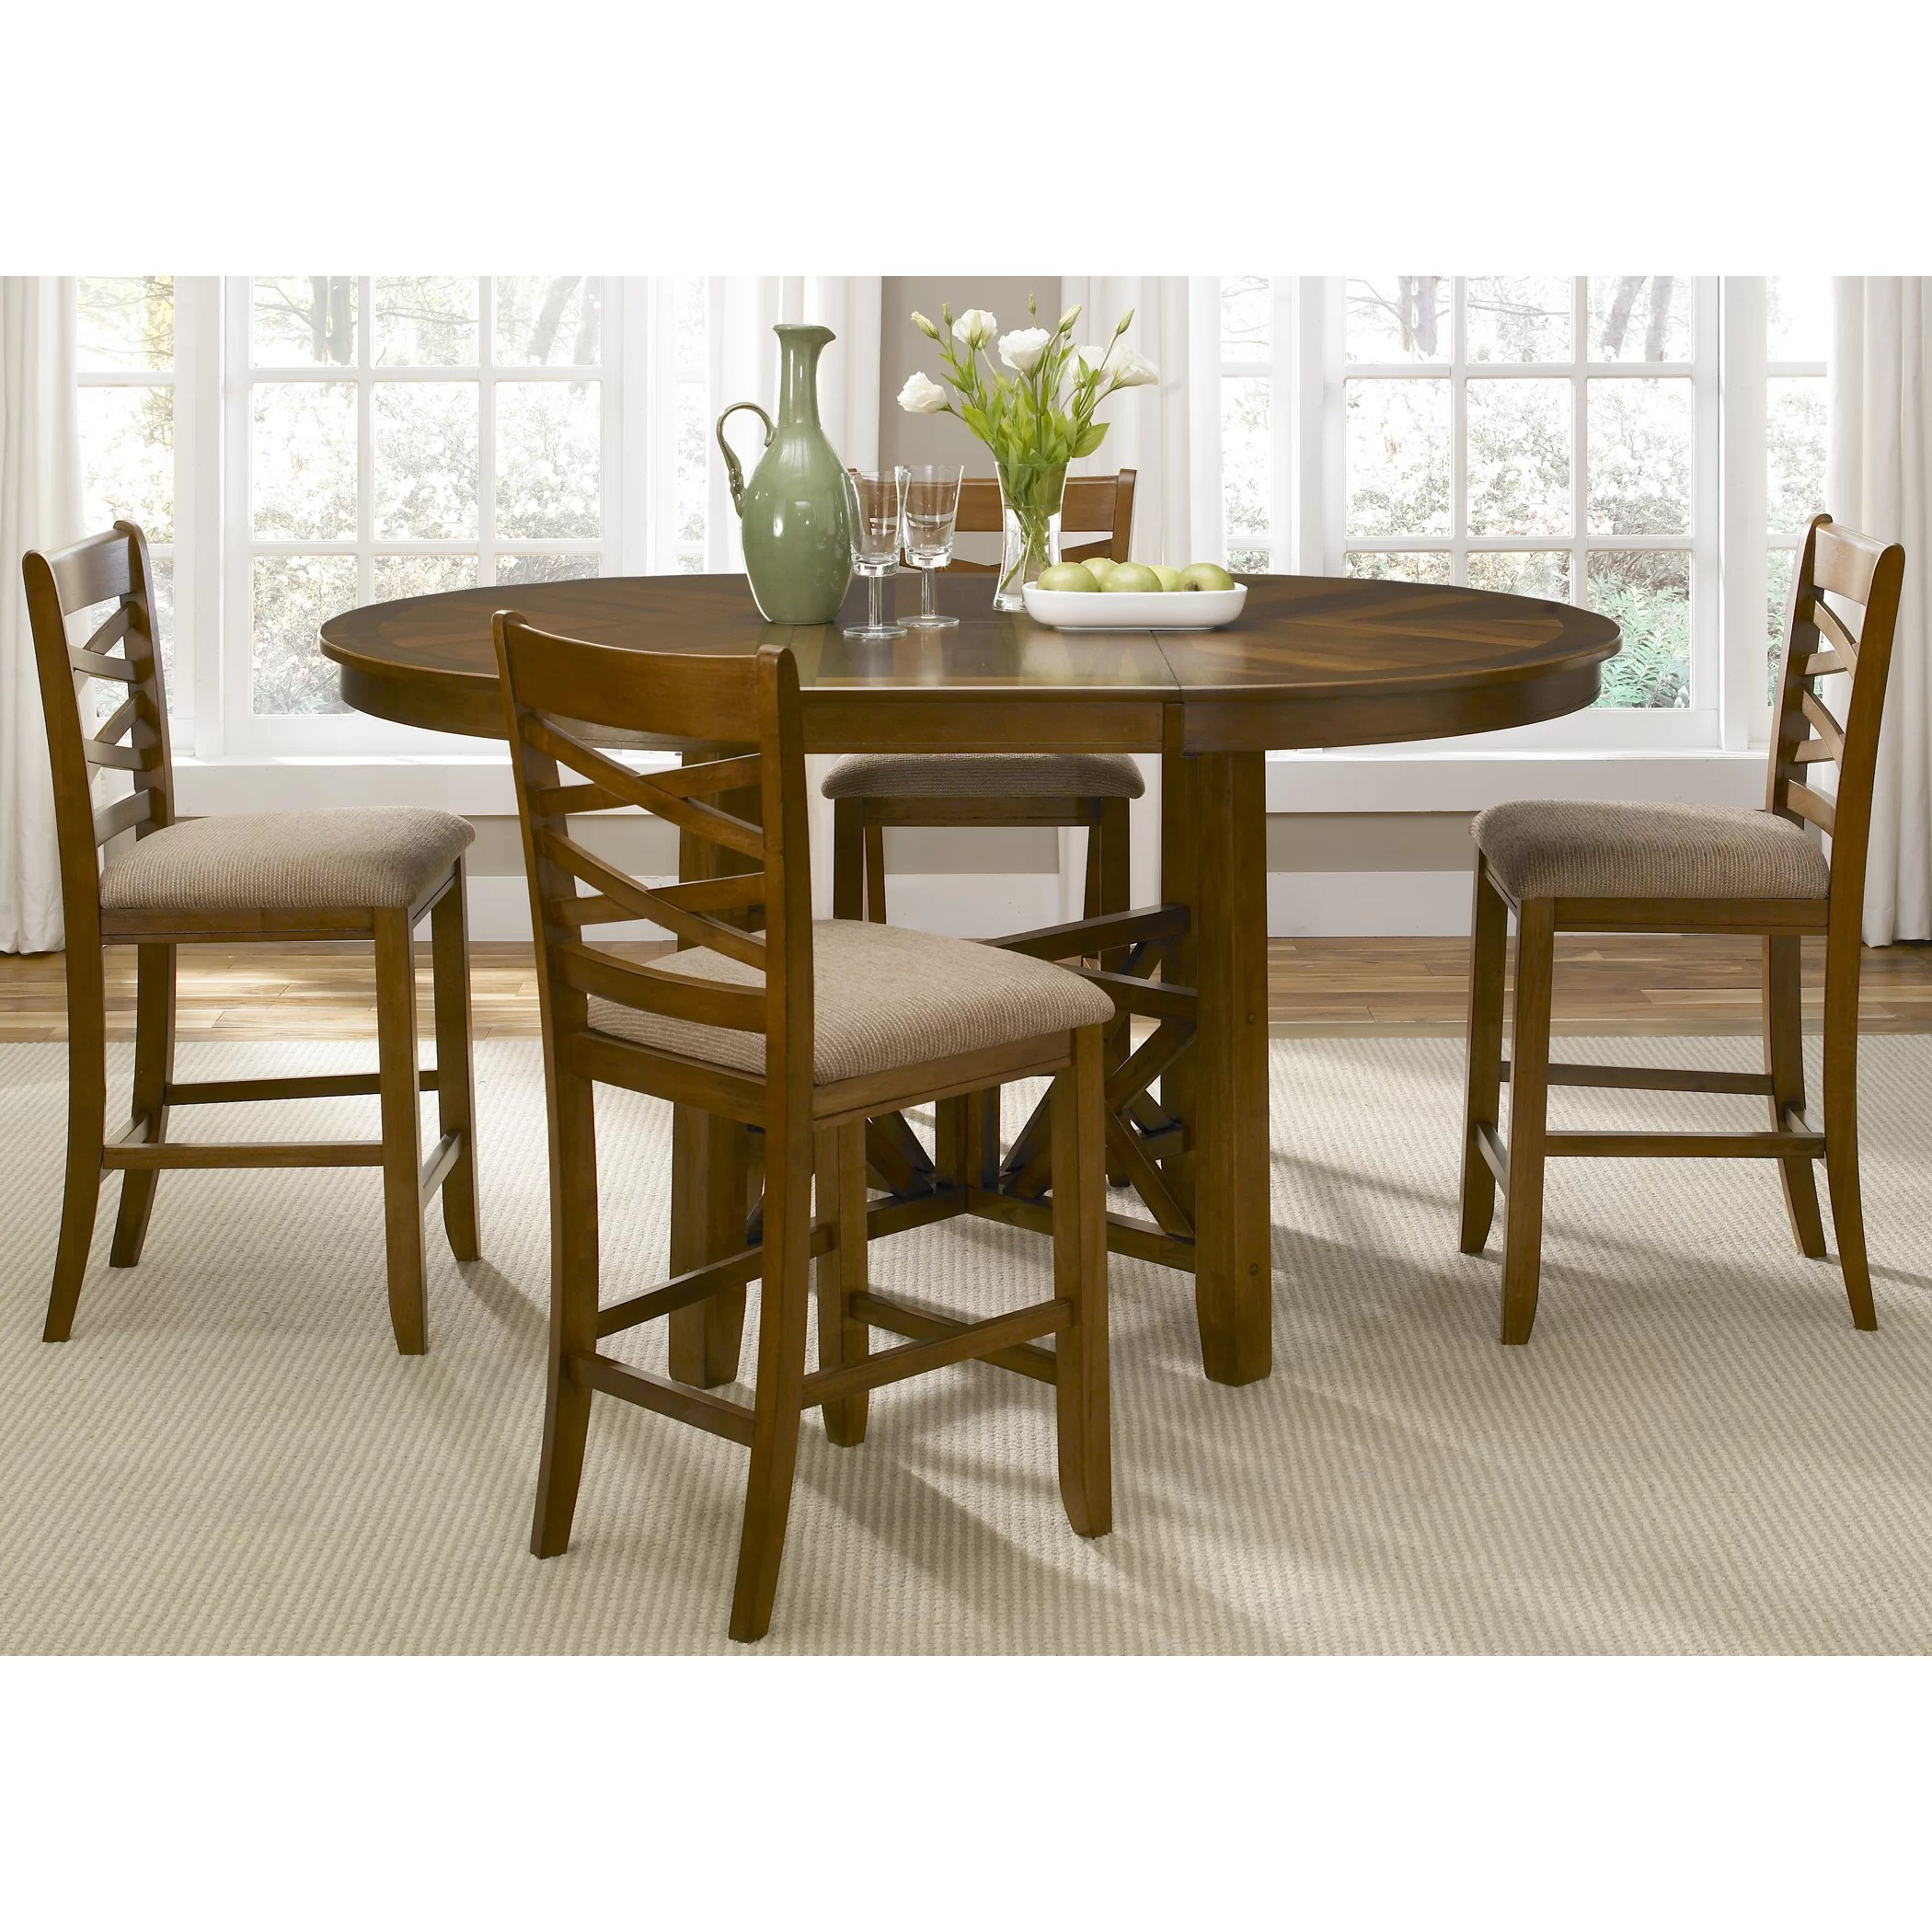 bistro chairs dining room wooden frame beach liberty furniture 5 piece set and reviews